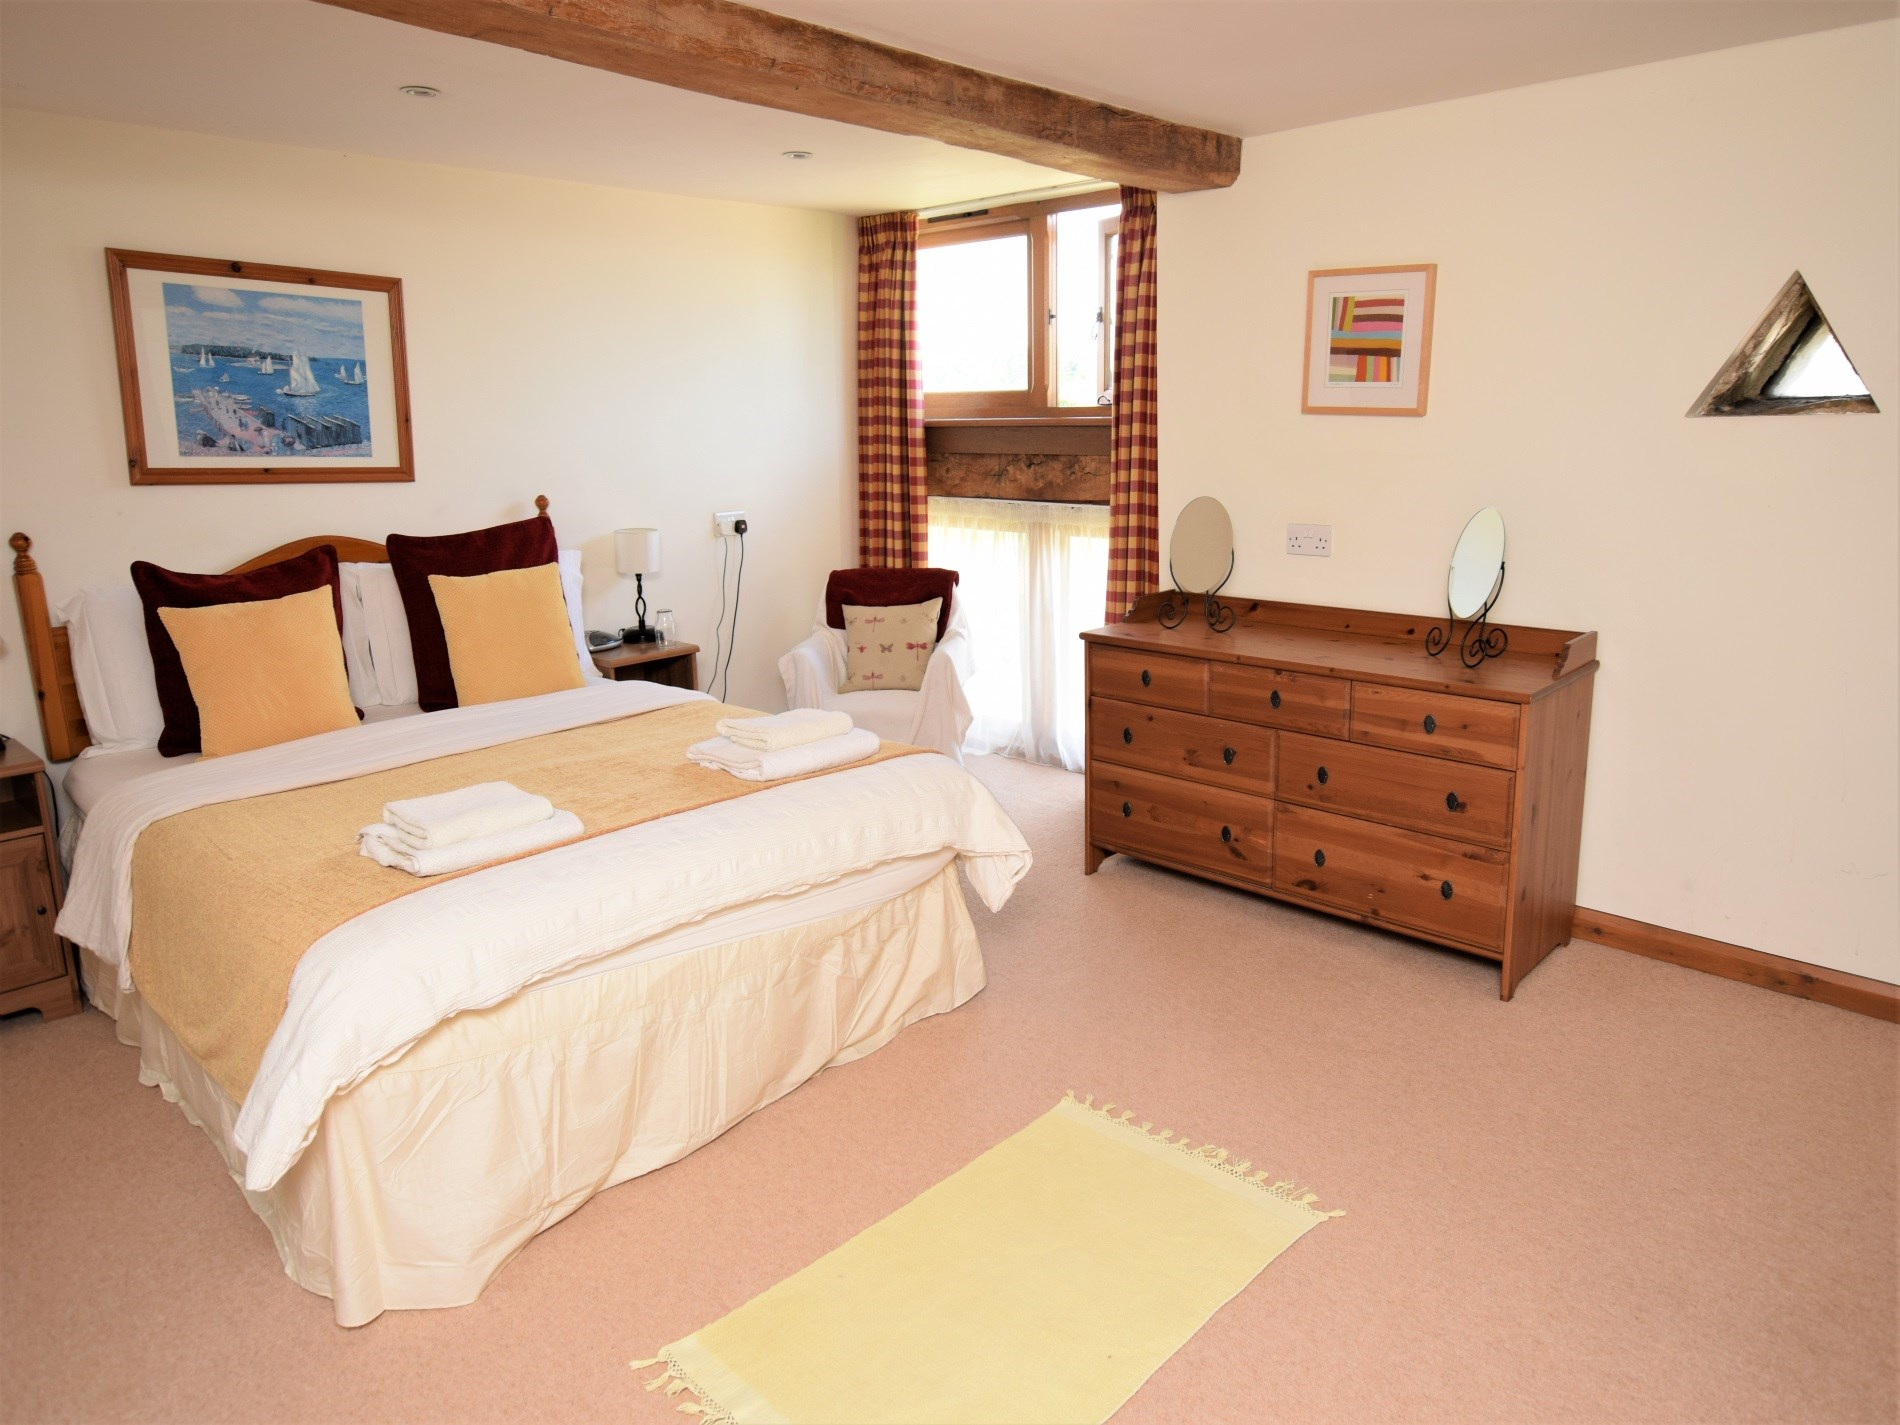 King size bedroom leading to the twin bedroom